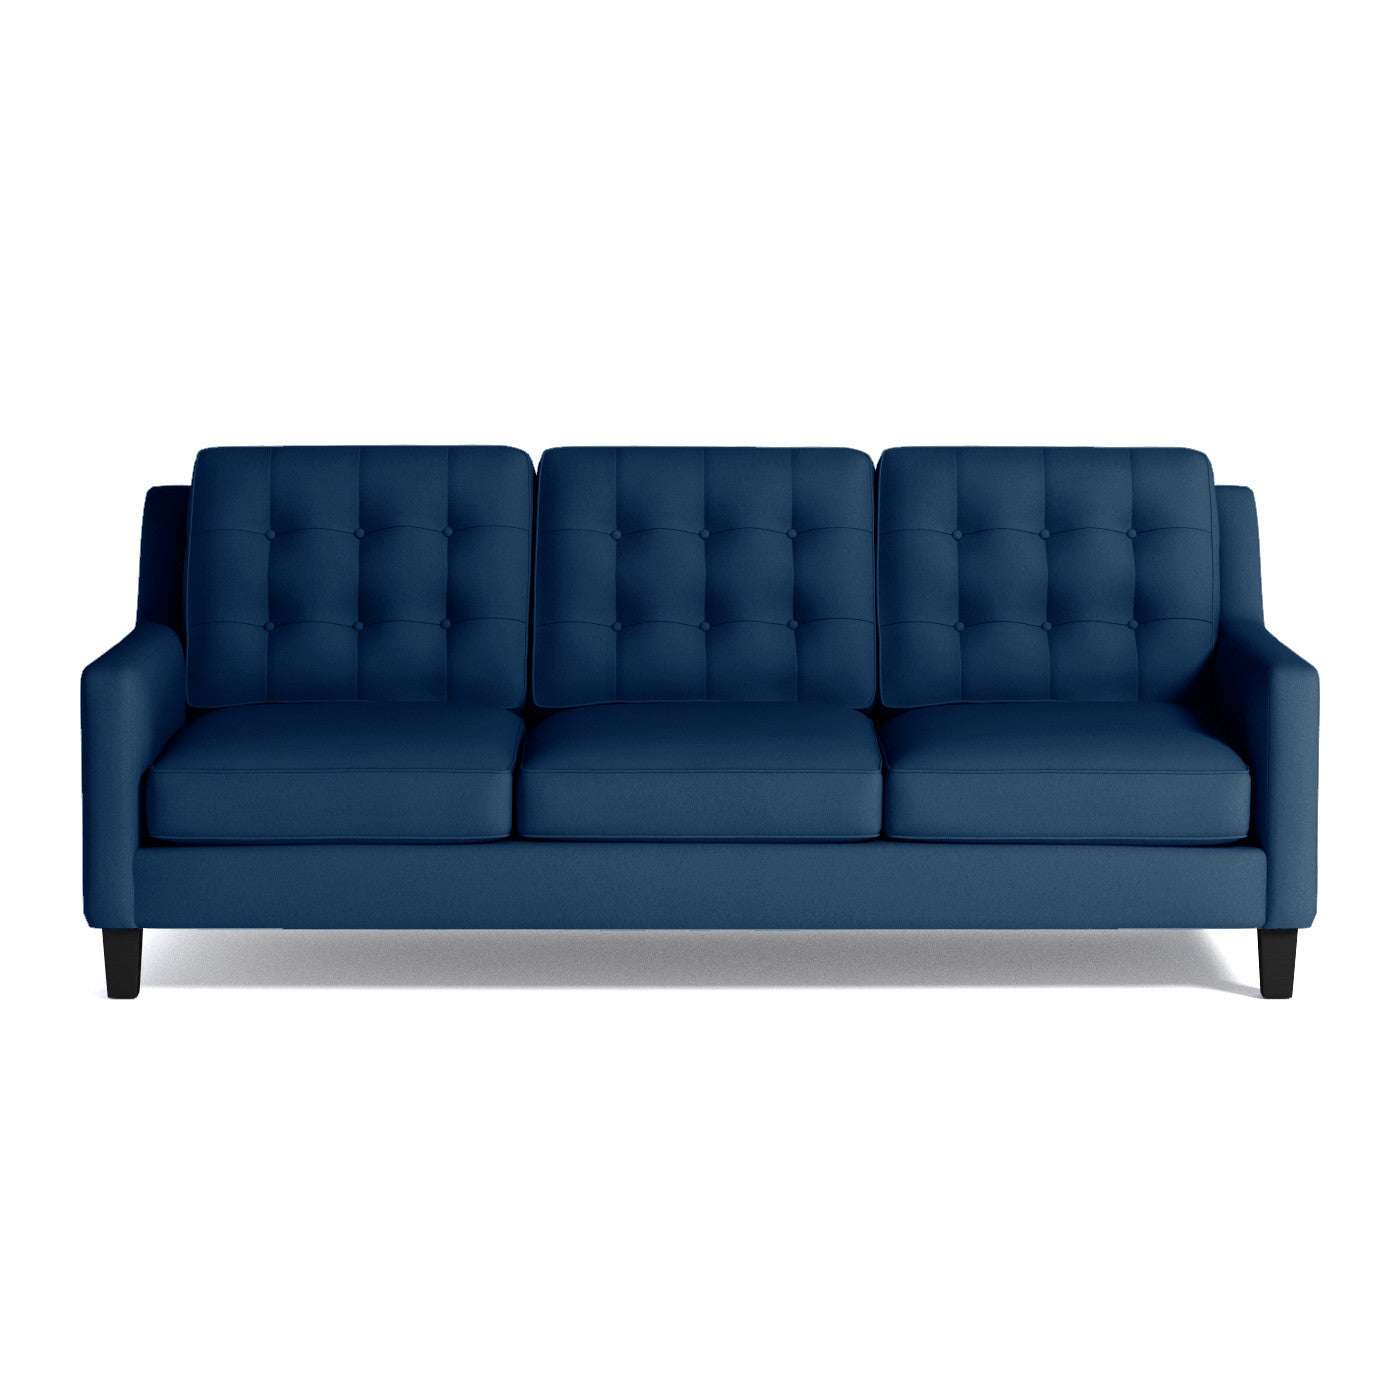 Elysian Sofa Choice of Fabrics Apt2B